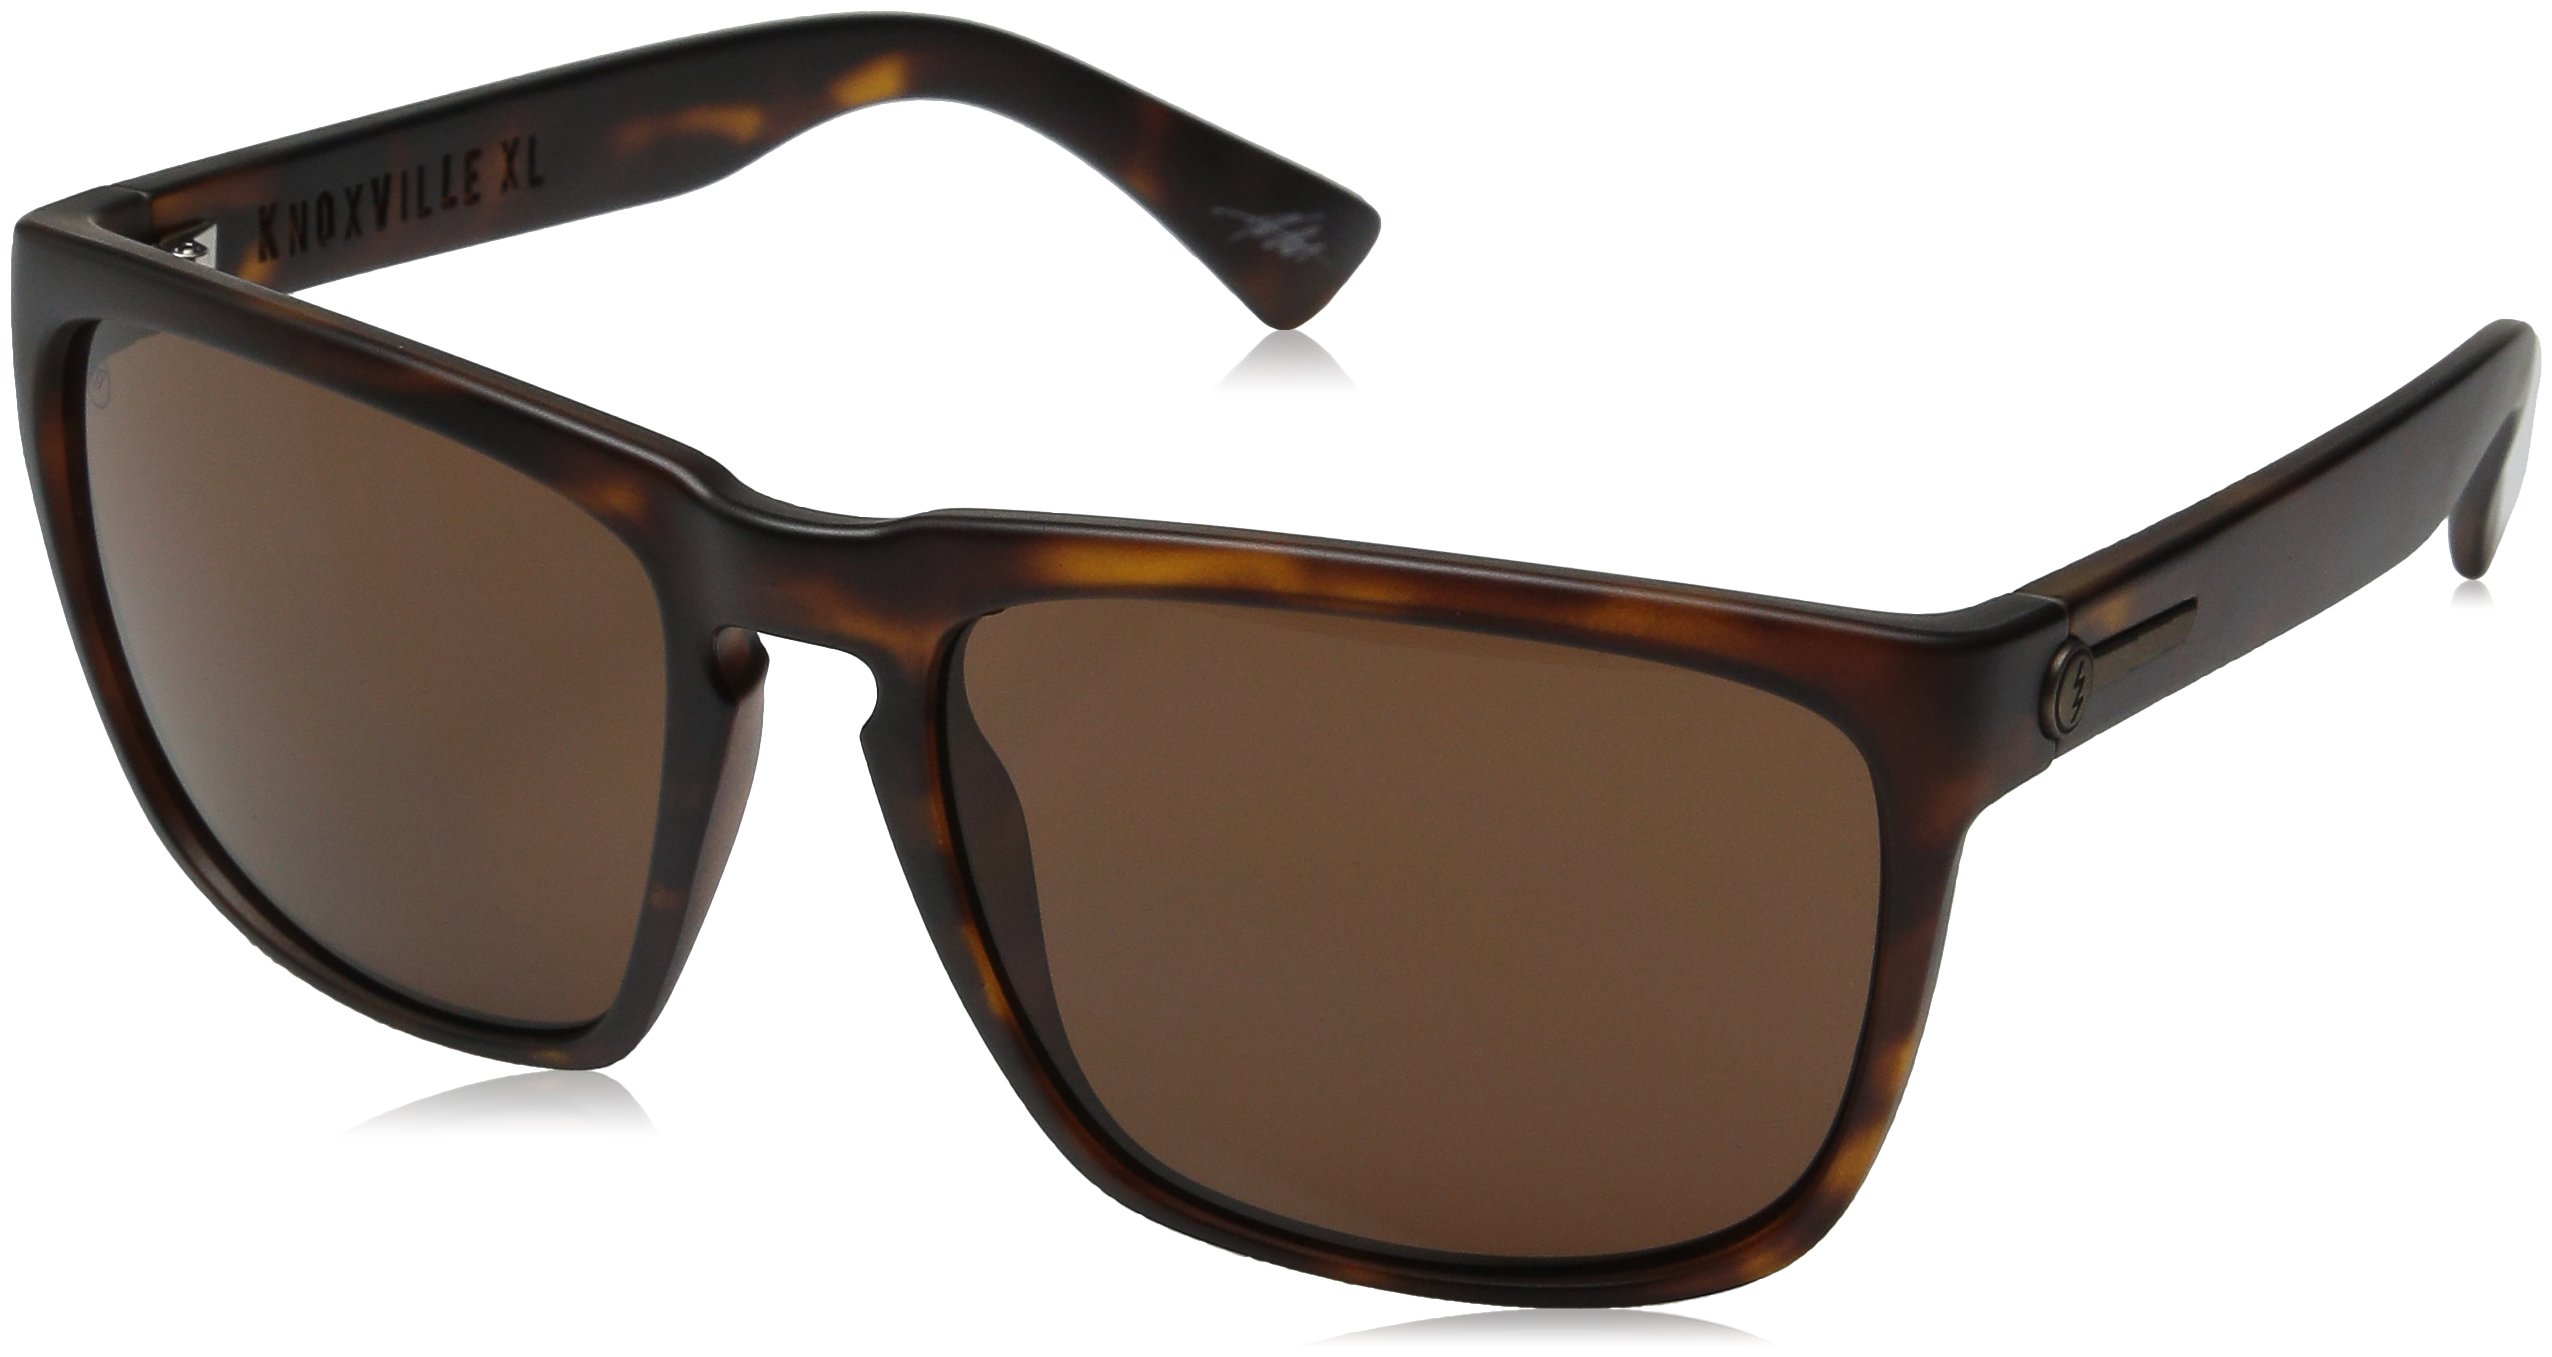 3a4ed3ca4bd Electric Visual Knoxville XL Matte Tortoise OHM Bronze Sunglasses ...